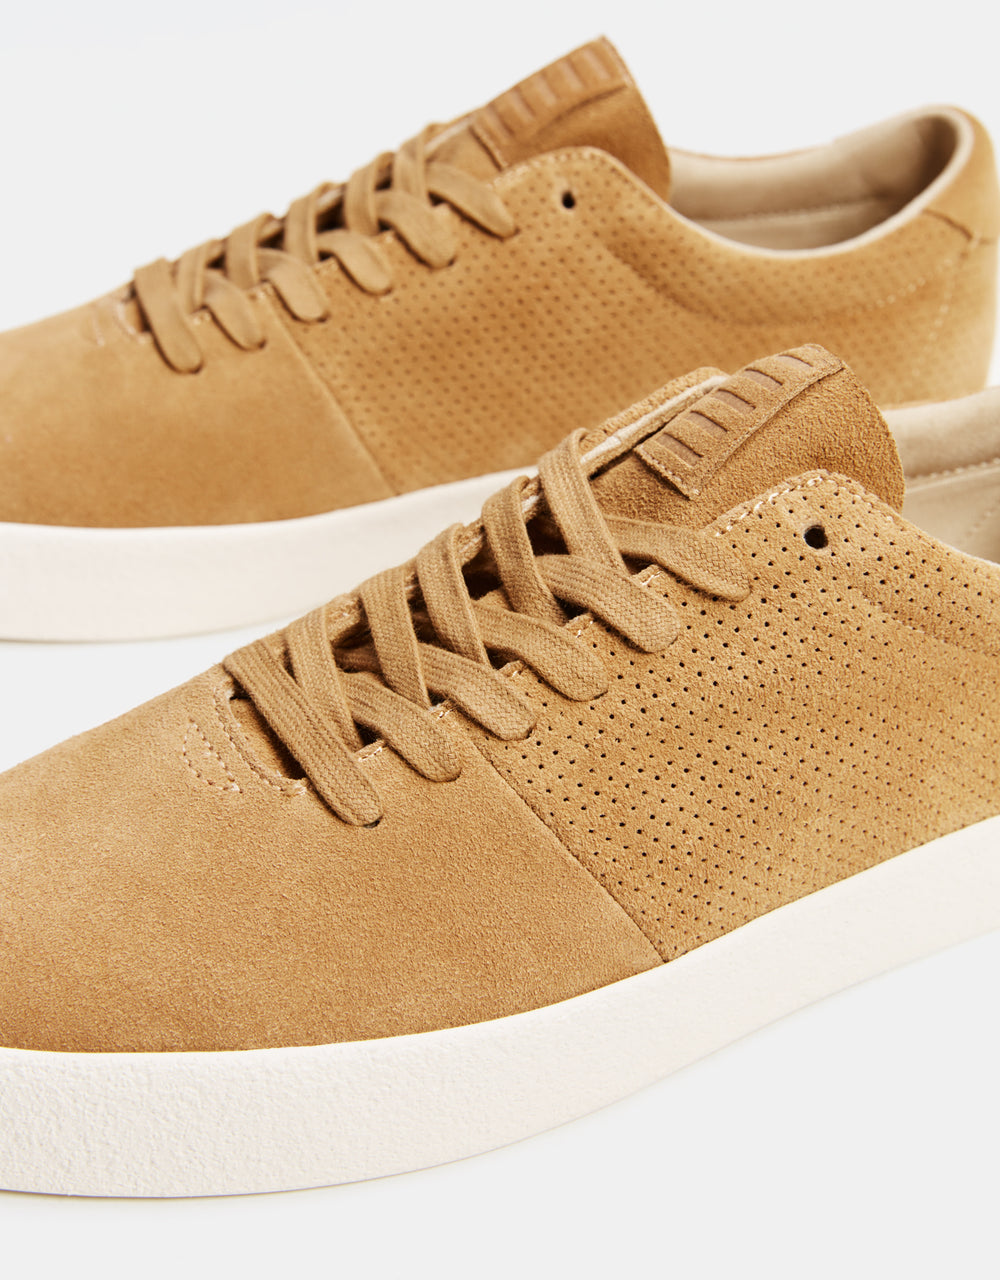 Mens leather sneakers